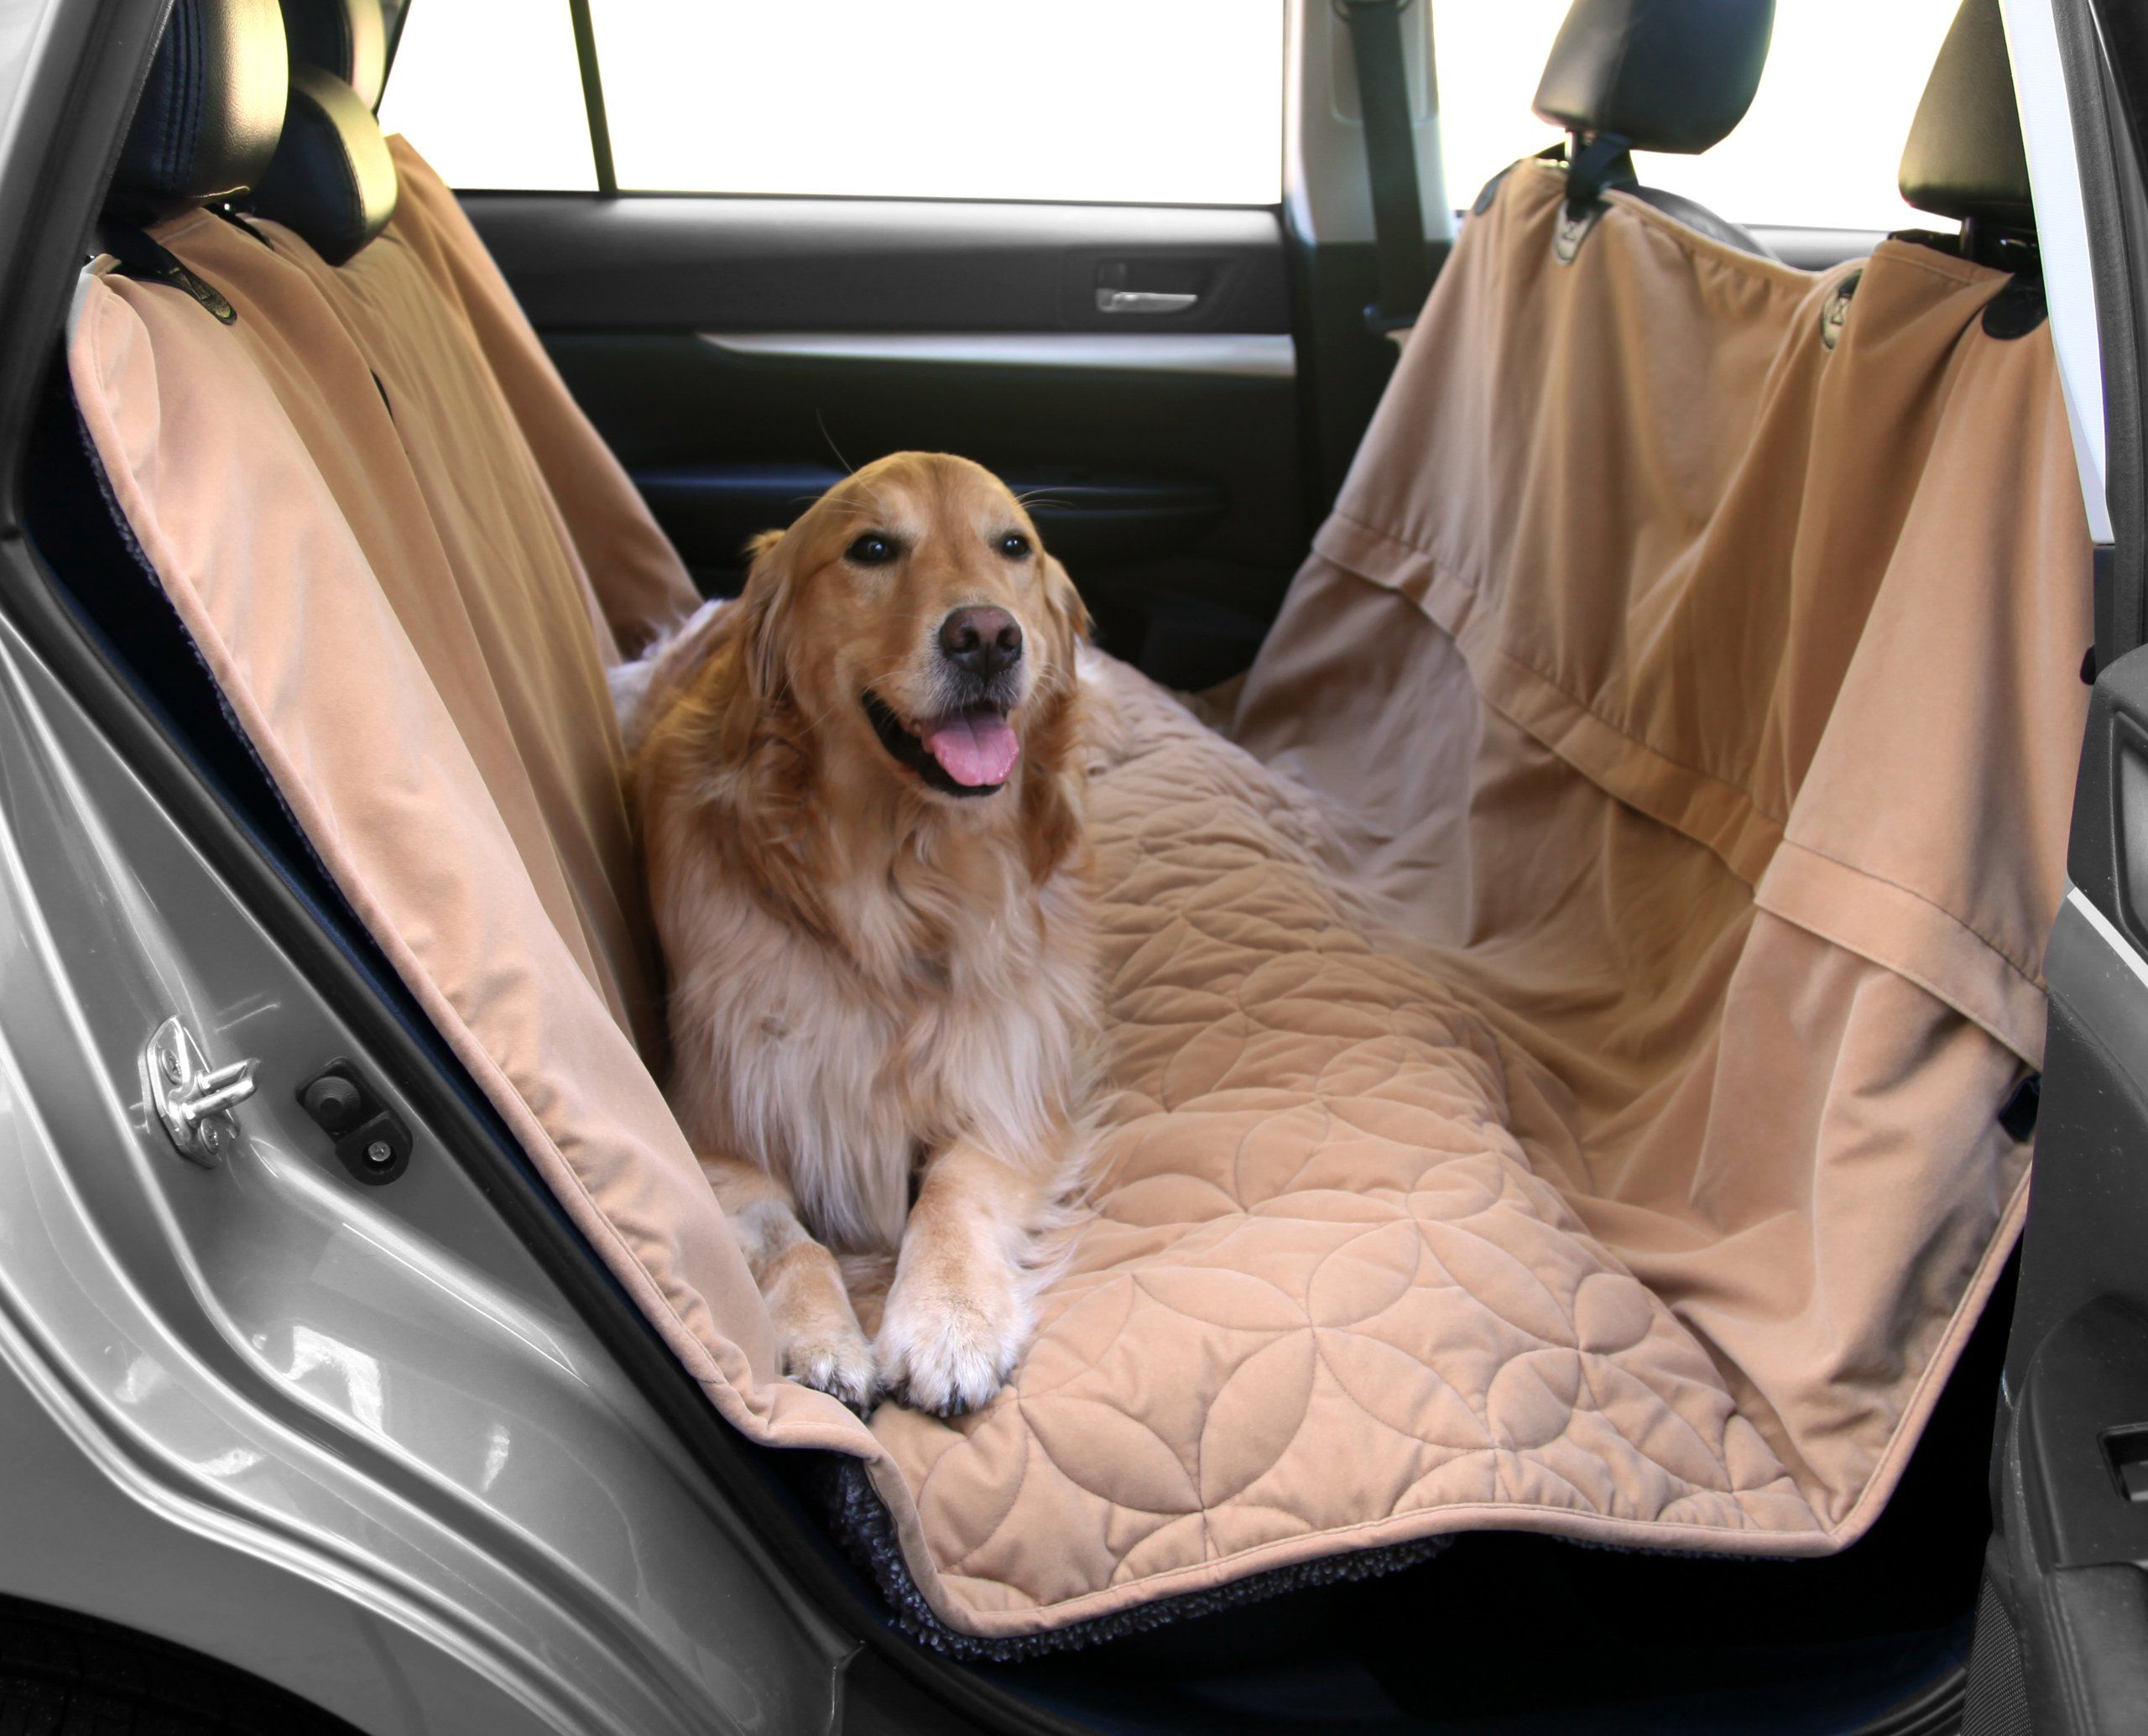 Floppy ears design waterproof microfiber zippered pet hammock seat